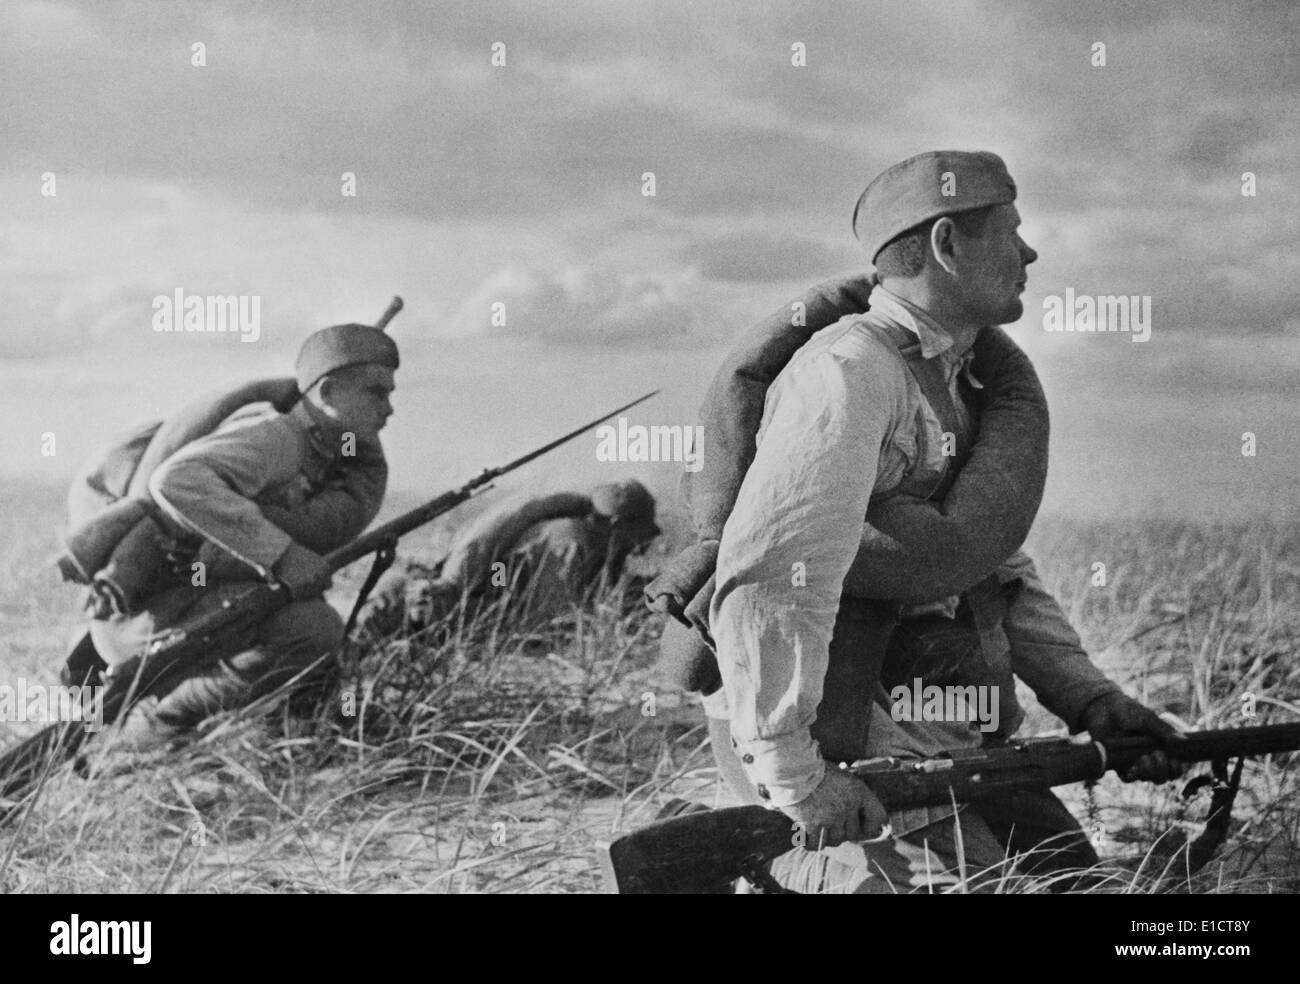 Red Army soldiers in exercises in far eastern territory of the Soviet Union, 1936. The simply equipped soldiers indicate the - Stock Image